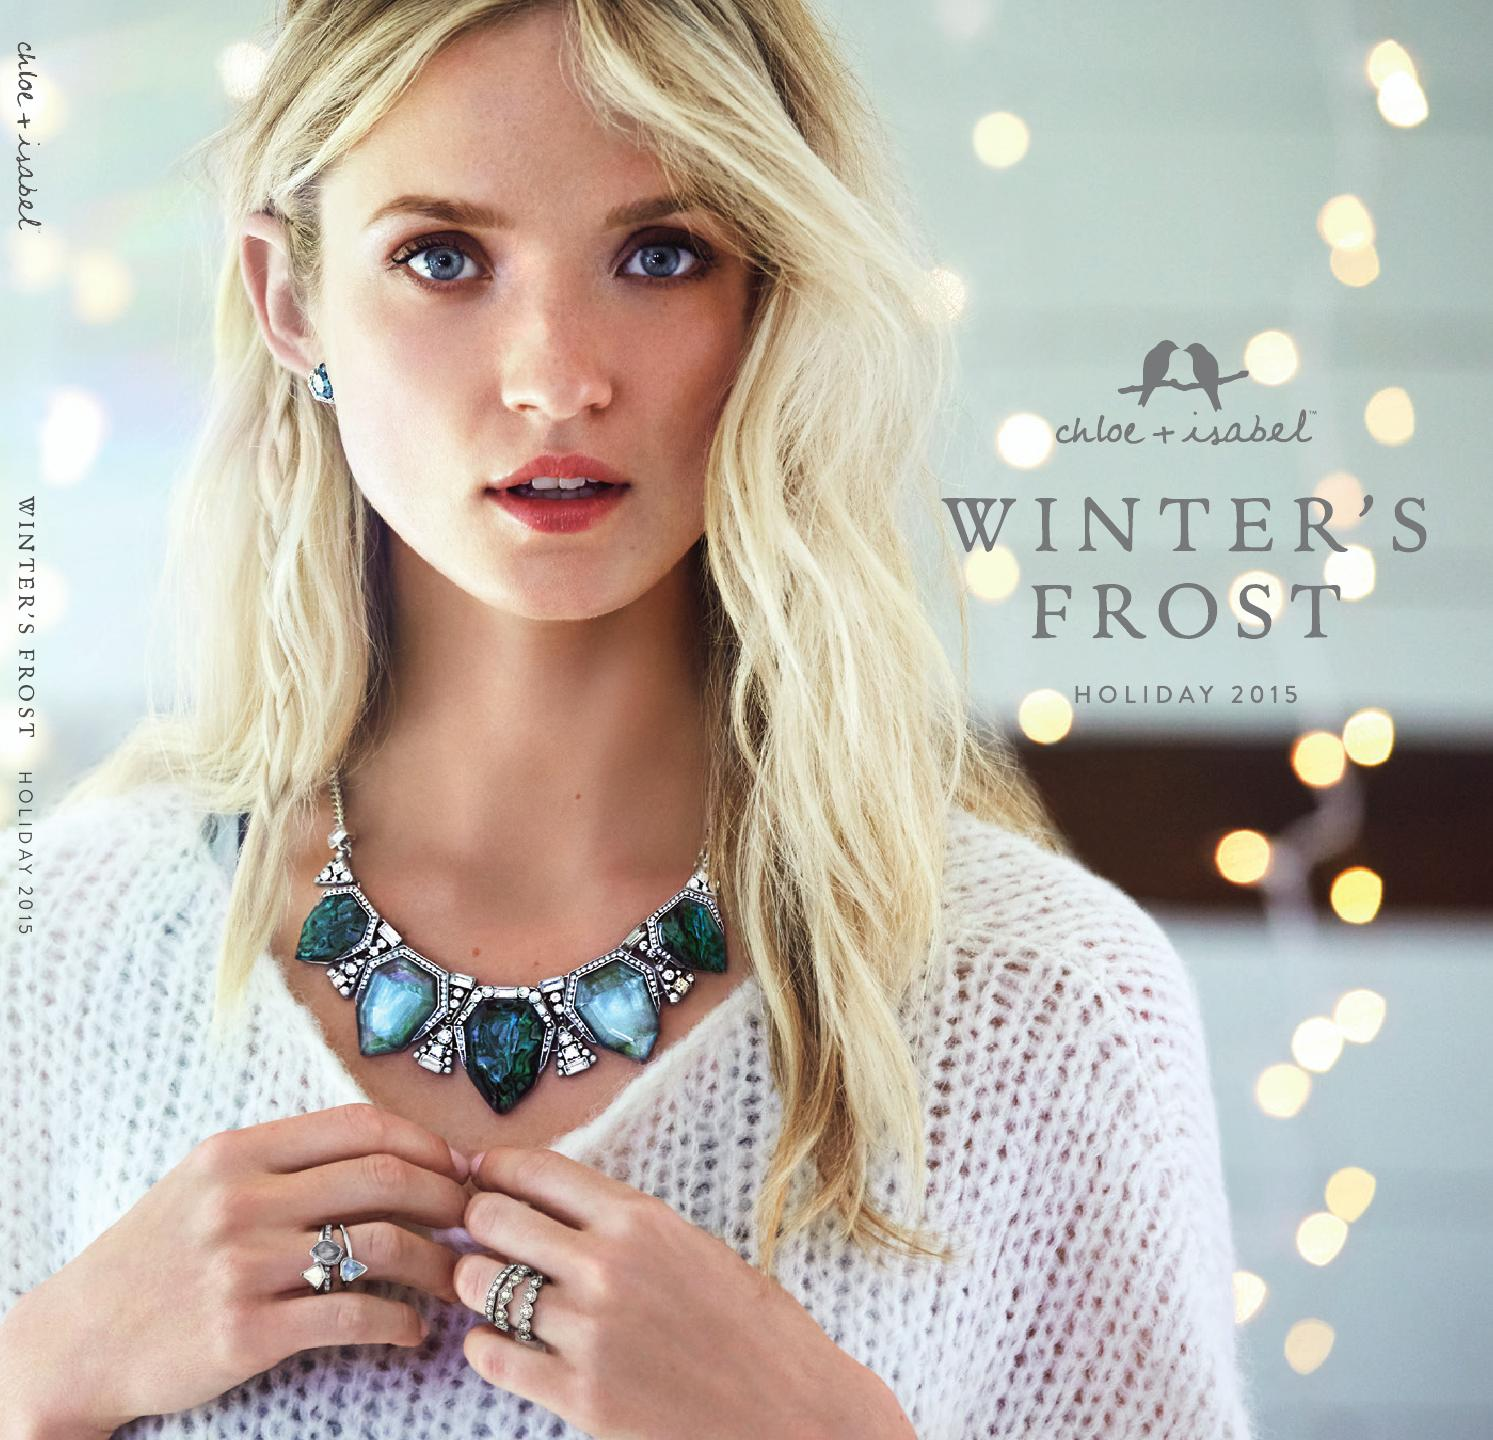 Chloe Snow 2015: The Perfect Collection to Embrace Winter